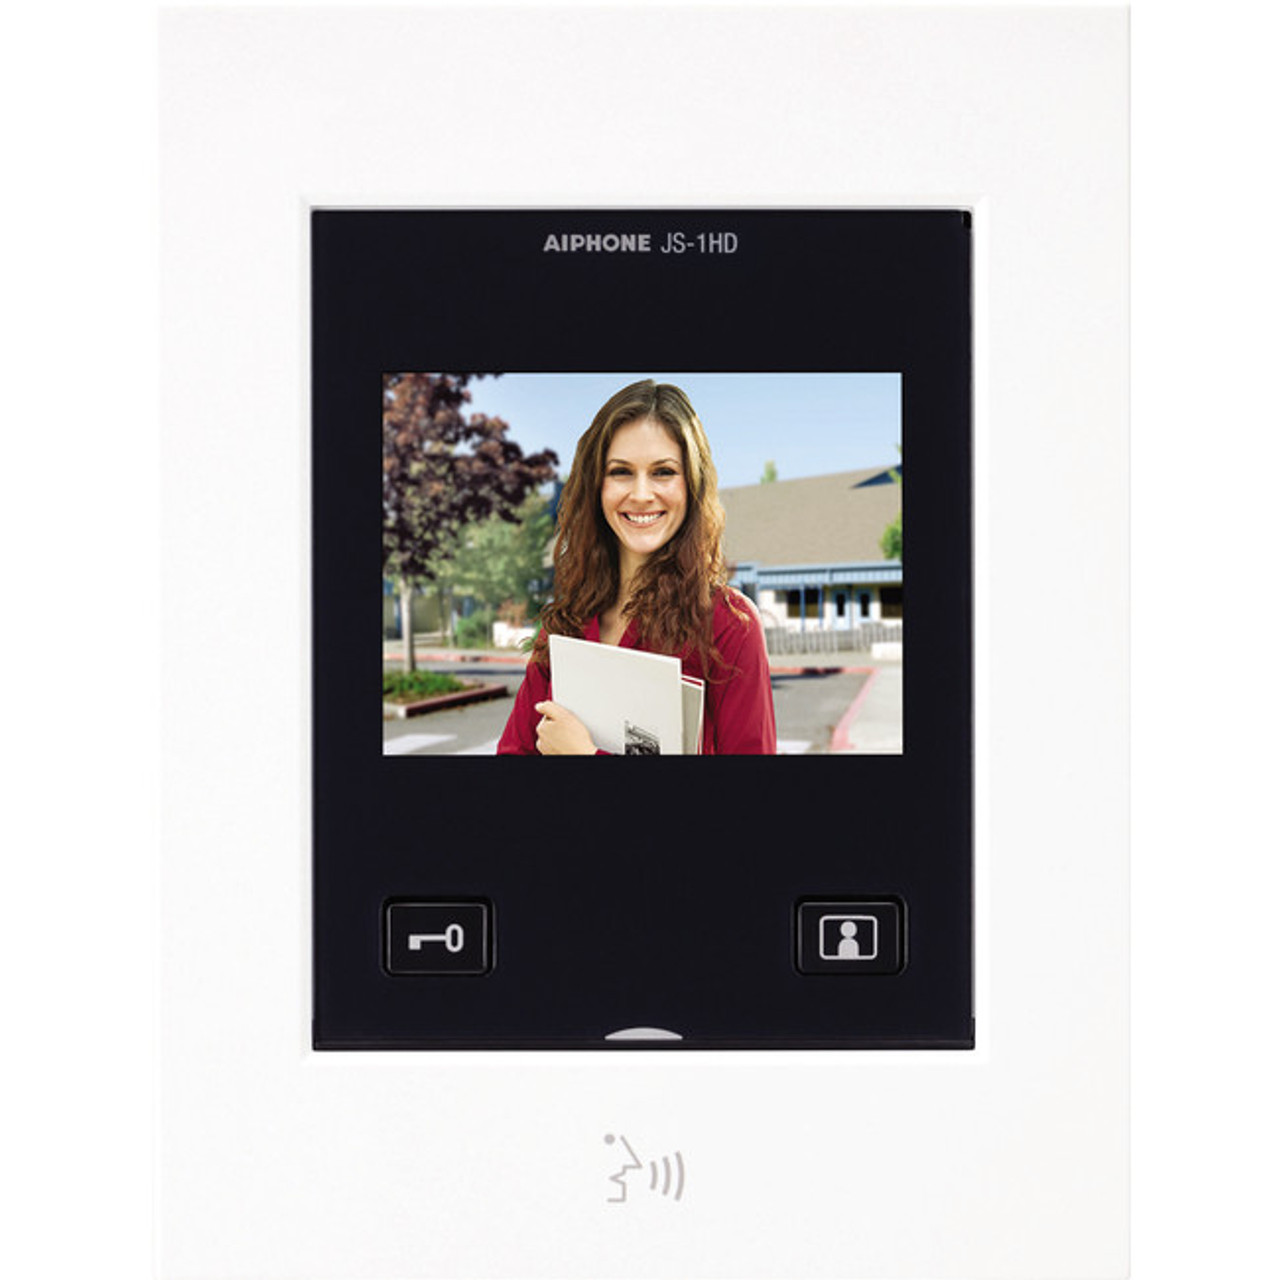 Aiphone JSIHD 3.5 Inch Hands Free Sub Master Station For JSS1A - RRP $295.00